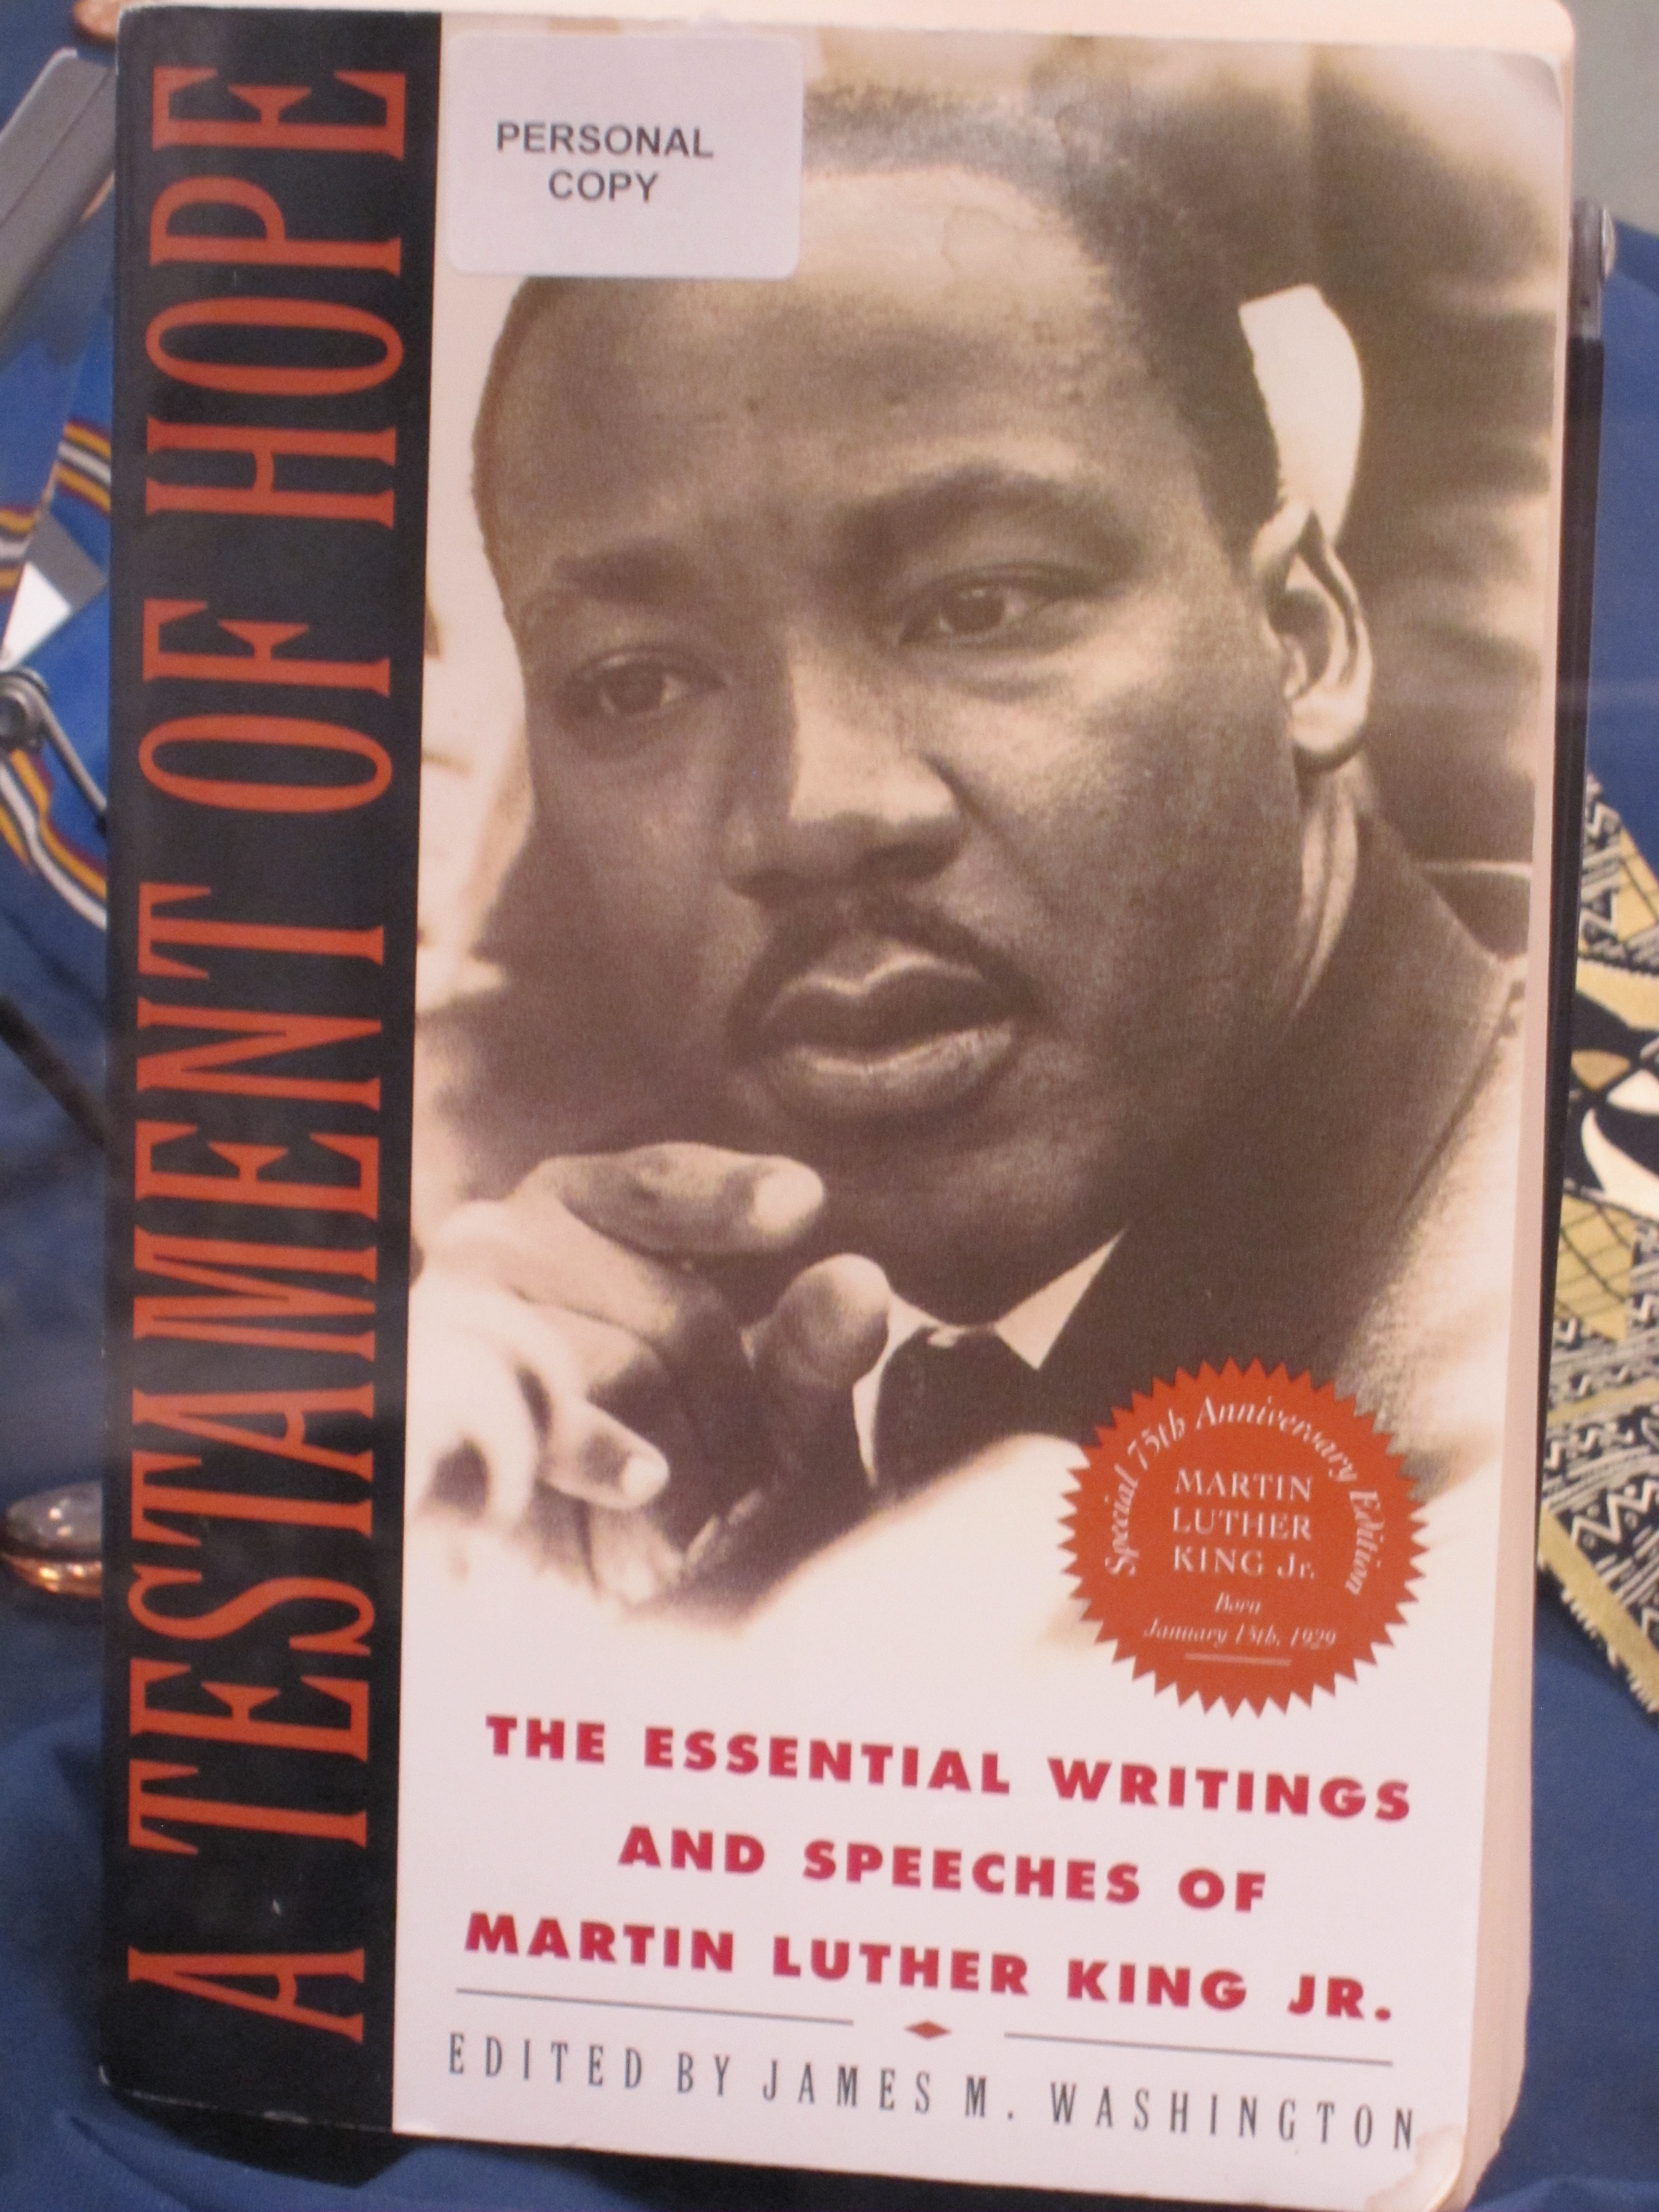 A Testament of Hope--The Essential Writings and Speeches of Martin Luther King Jr.